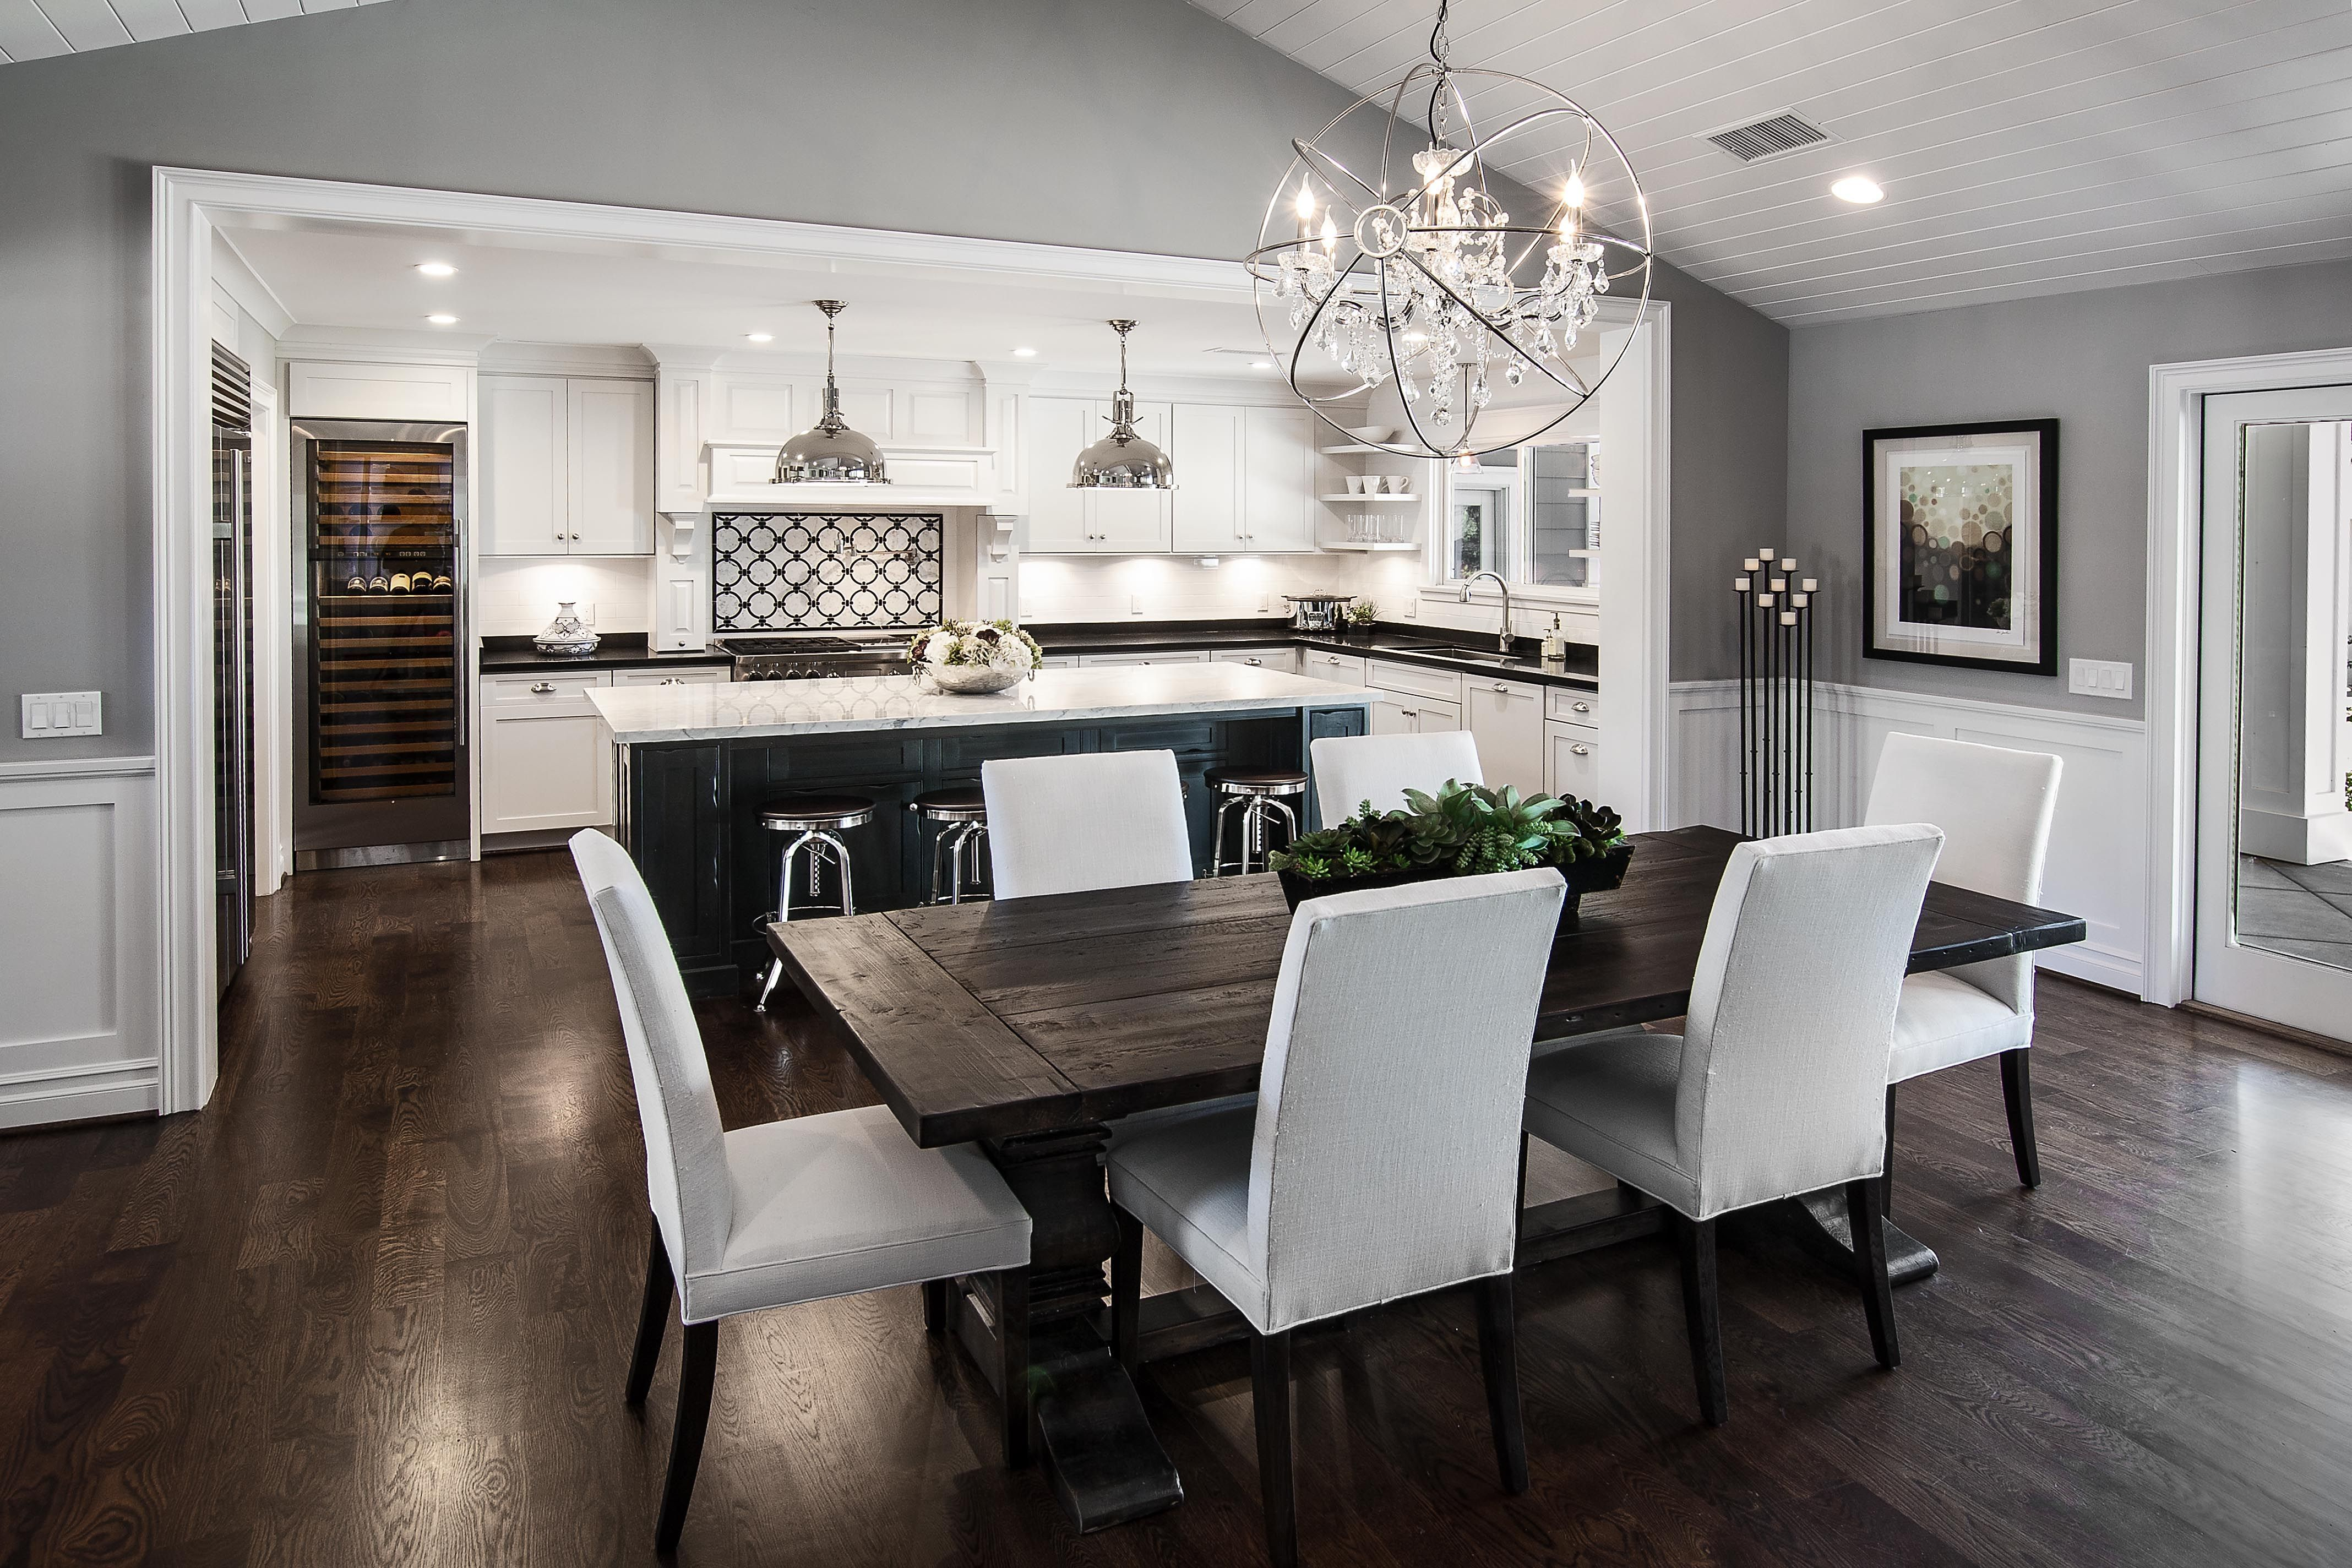 Open Concept Kitchen Living Room Floor Plans  Google Search Fascinating Open Concept Living Room Dining Room And Kitchen Inspiration Design